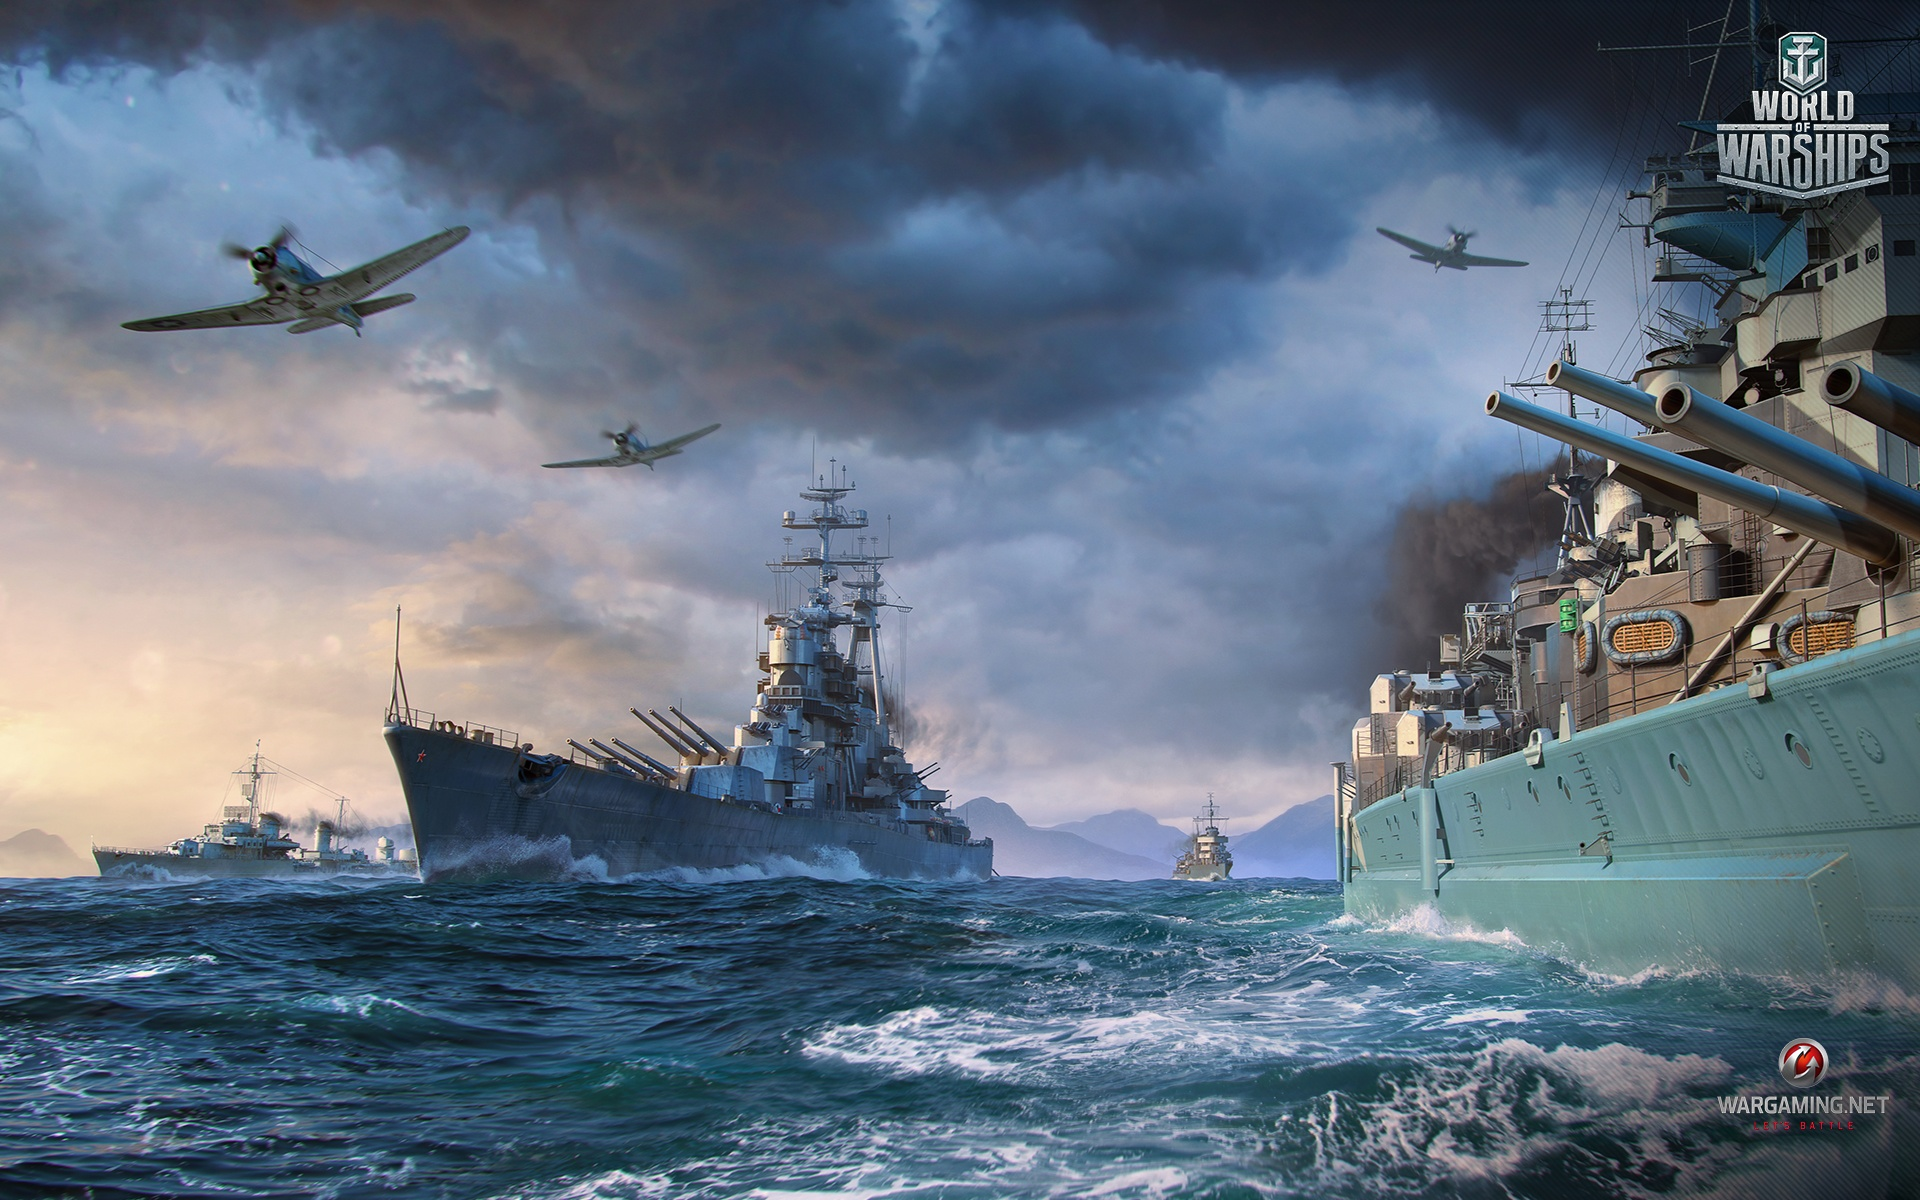 World Of Warships Wallpaper: End Of Year Wallpaper Blowout